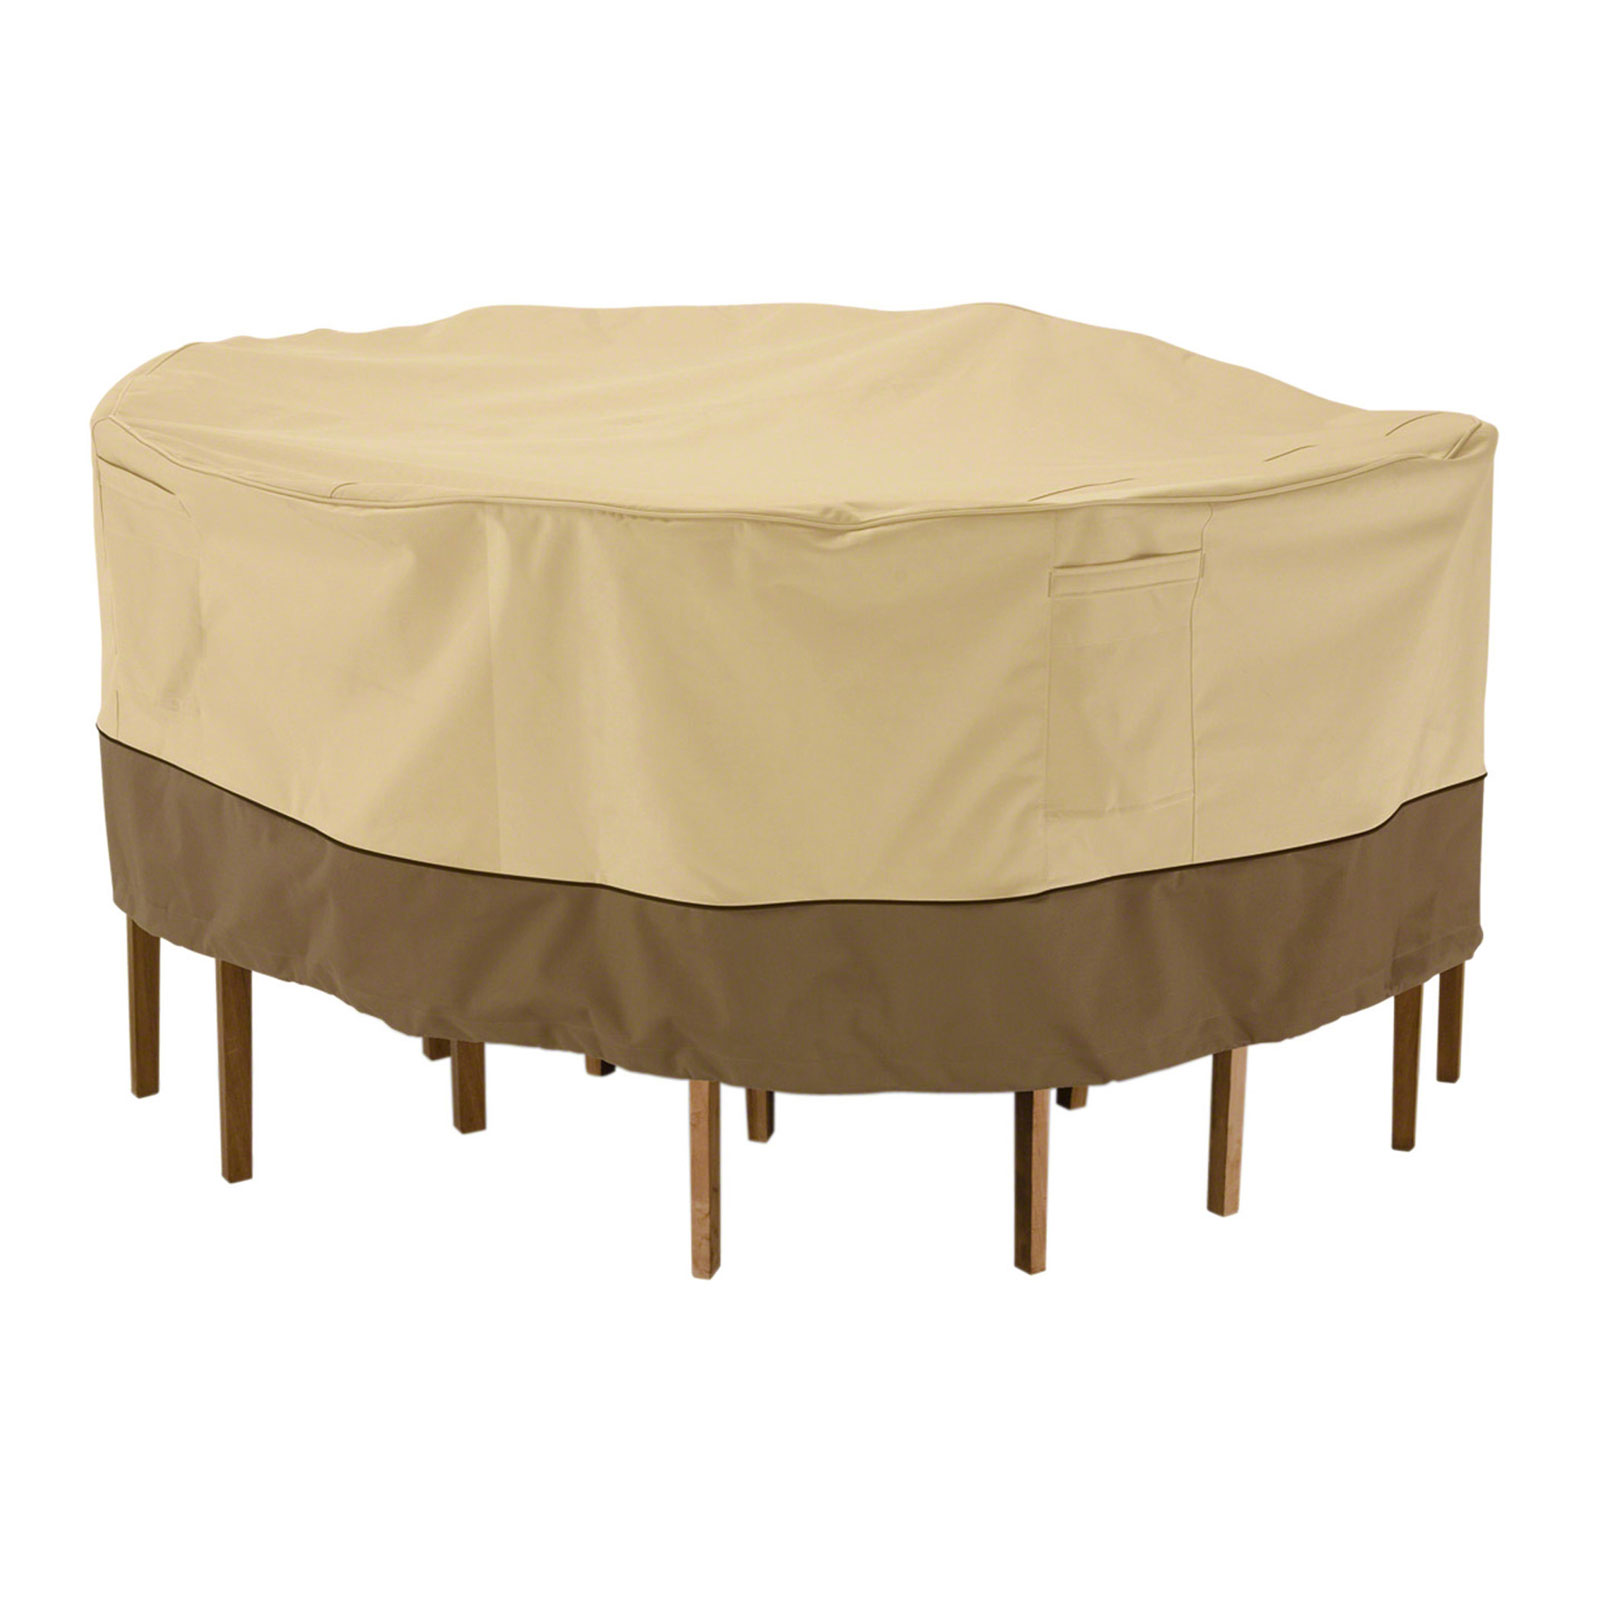 chair covers for garden furniture turquoise leather and ottoman patio table cover round veranda in